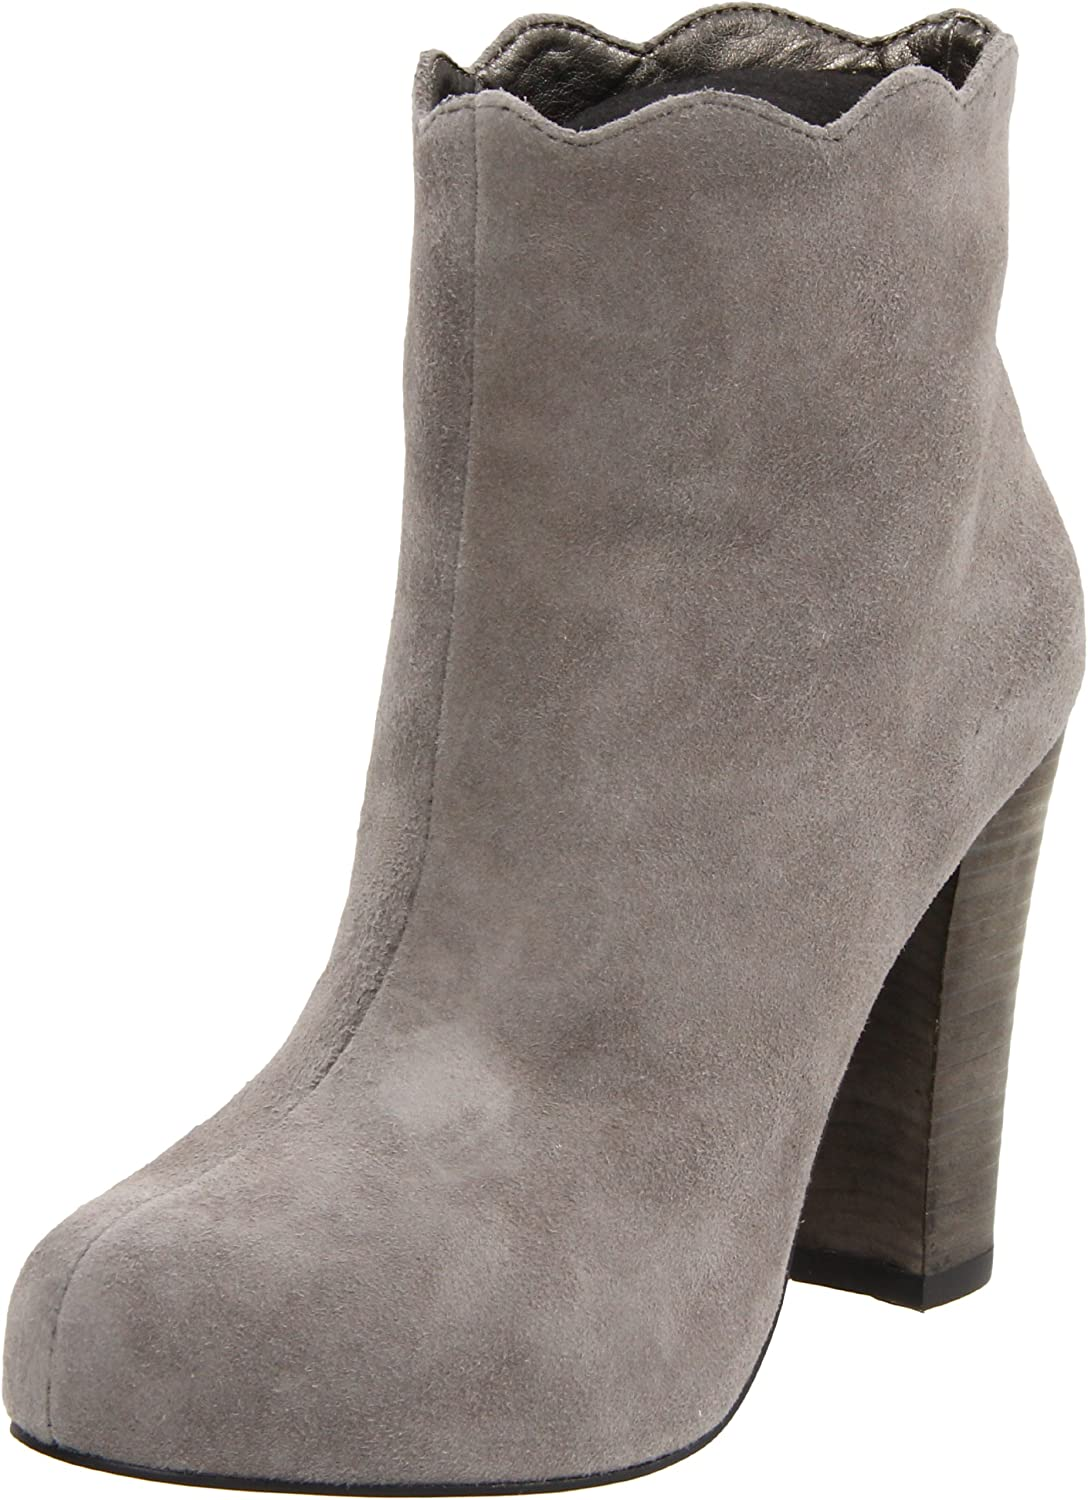 Charlotte Ronson Women's Dimphy Bootie